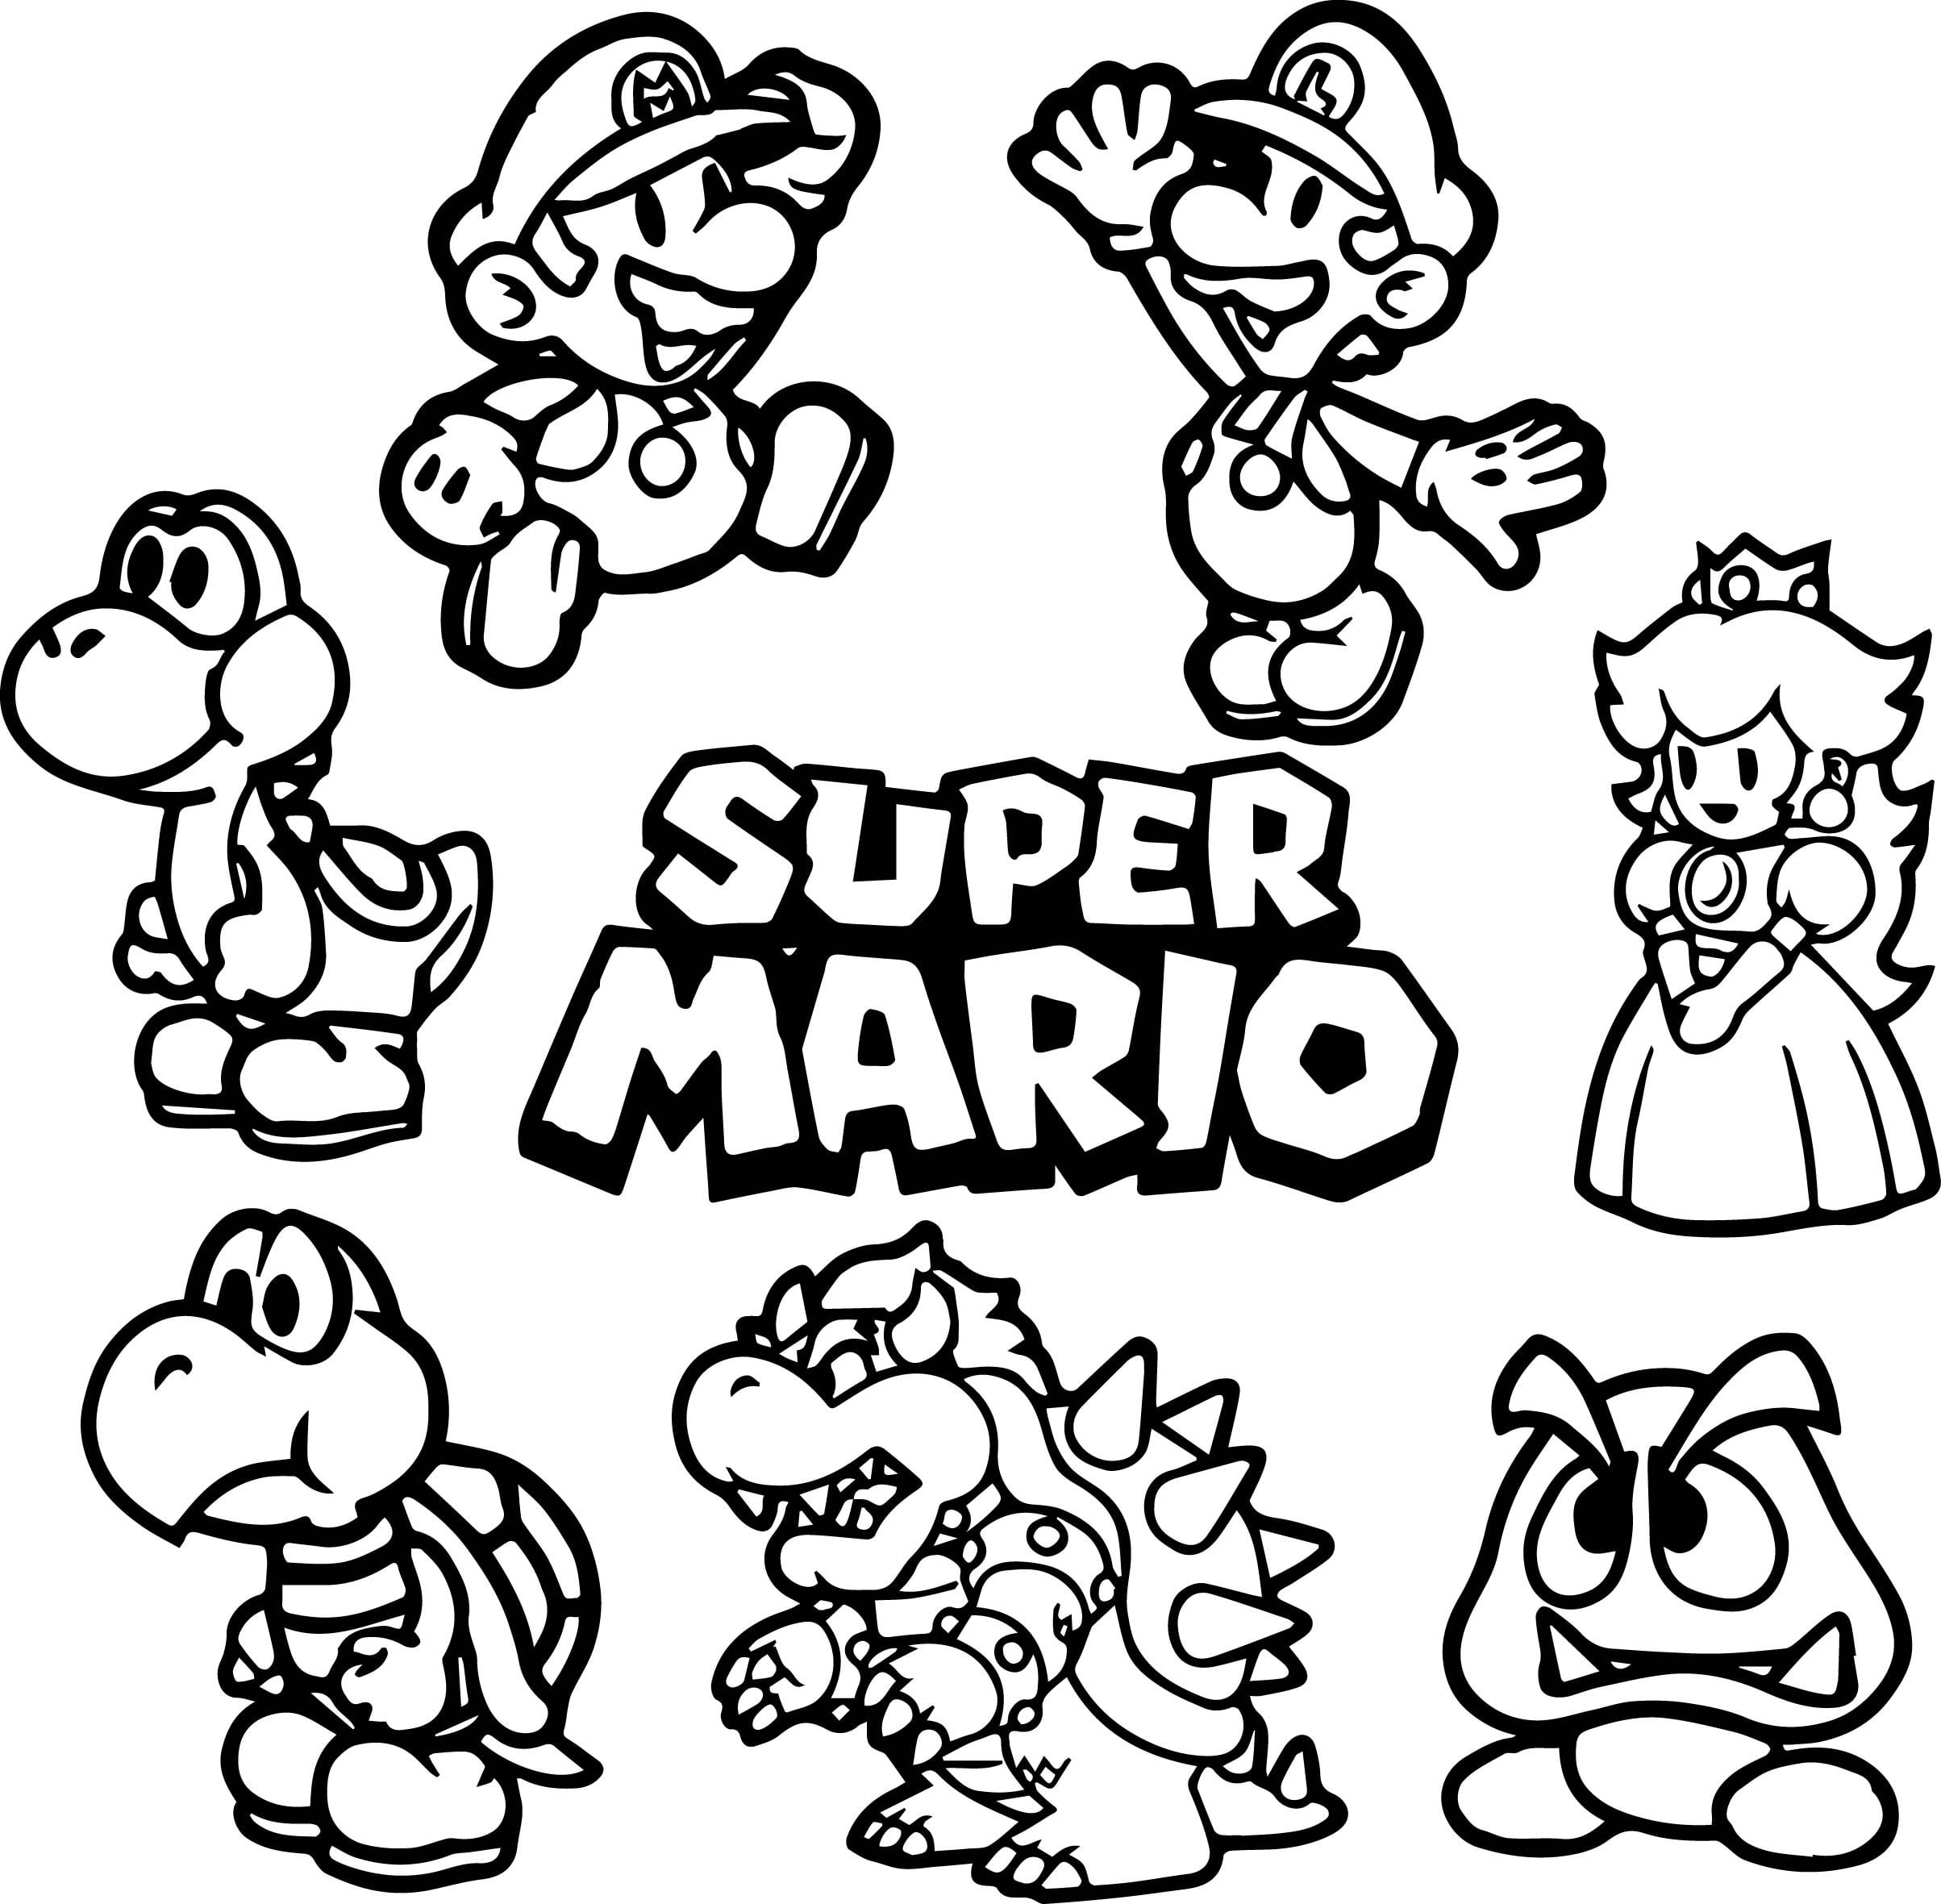 mario bro coloring pages mario coloring pages themes best apps for kids pages mario coloring bro